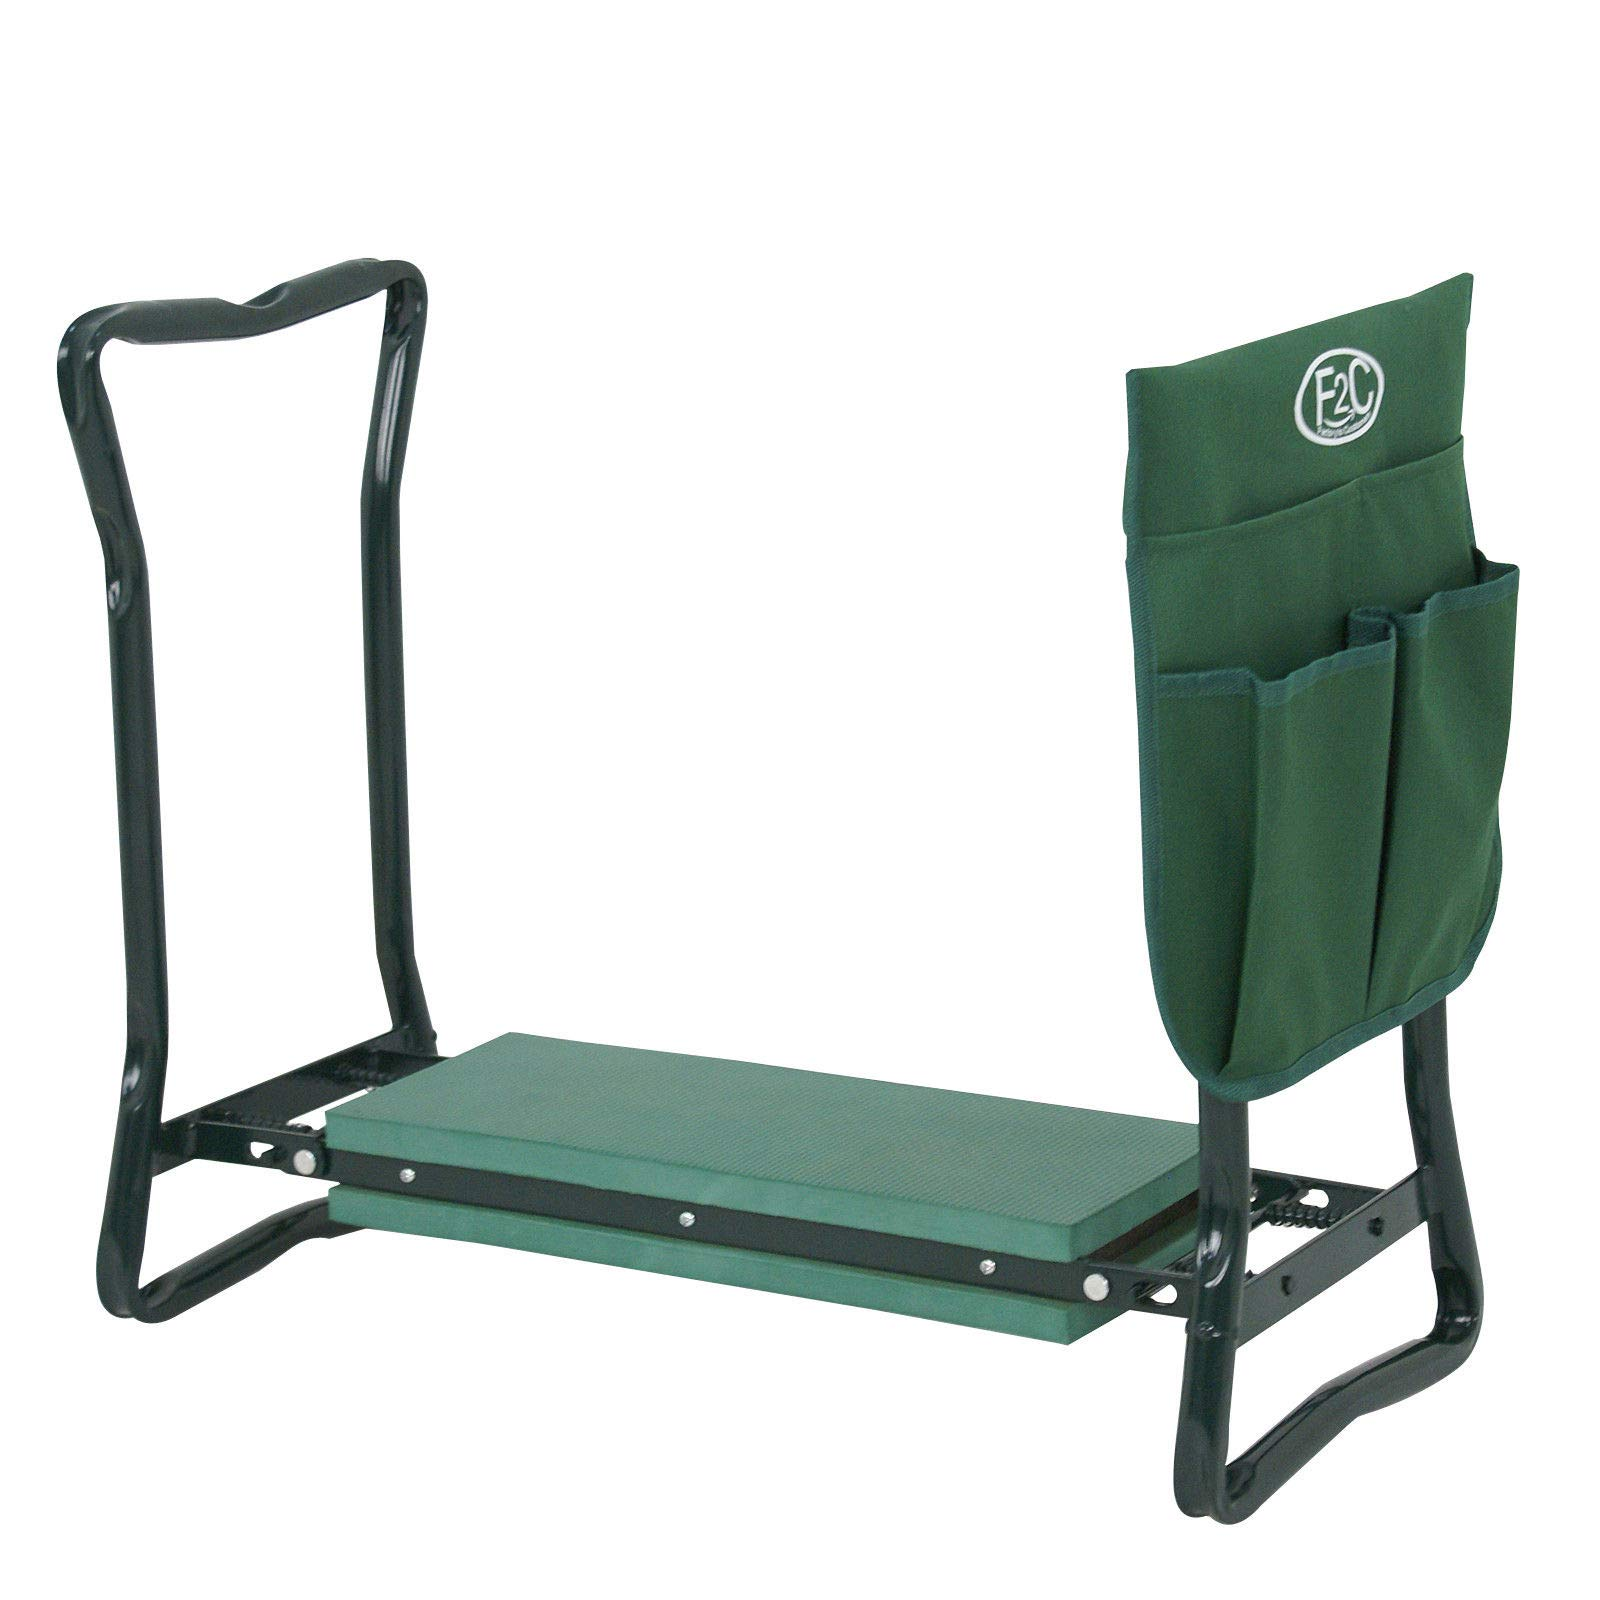 Has_Shop Garden Bench Foldable Kneeler Stool Soft Cushion Seat Pad Kneeling w Tool Pouch by Has_Shop (Image #5)